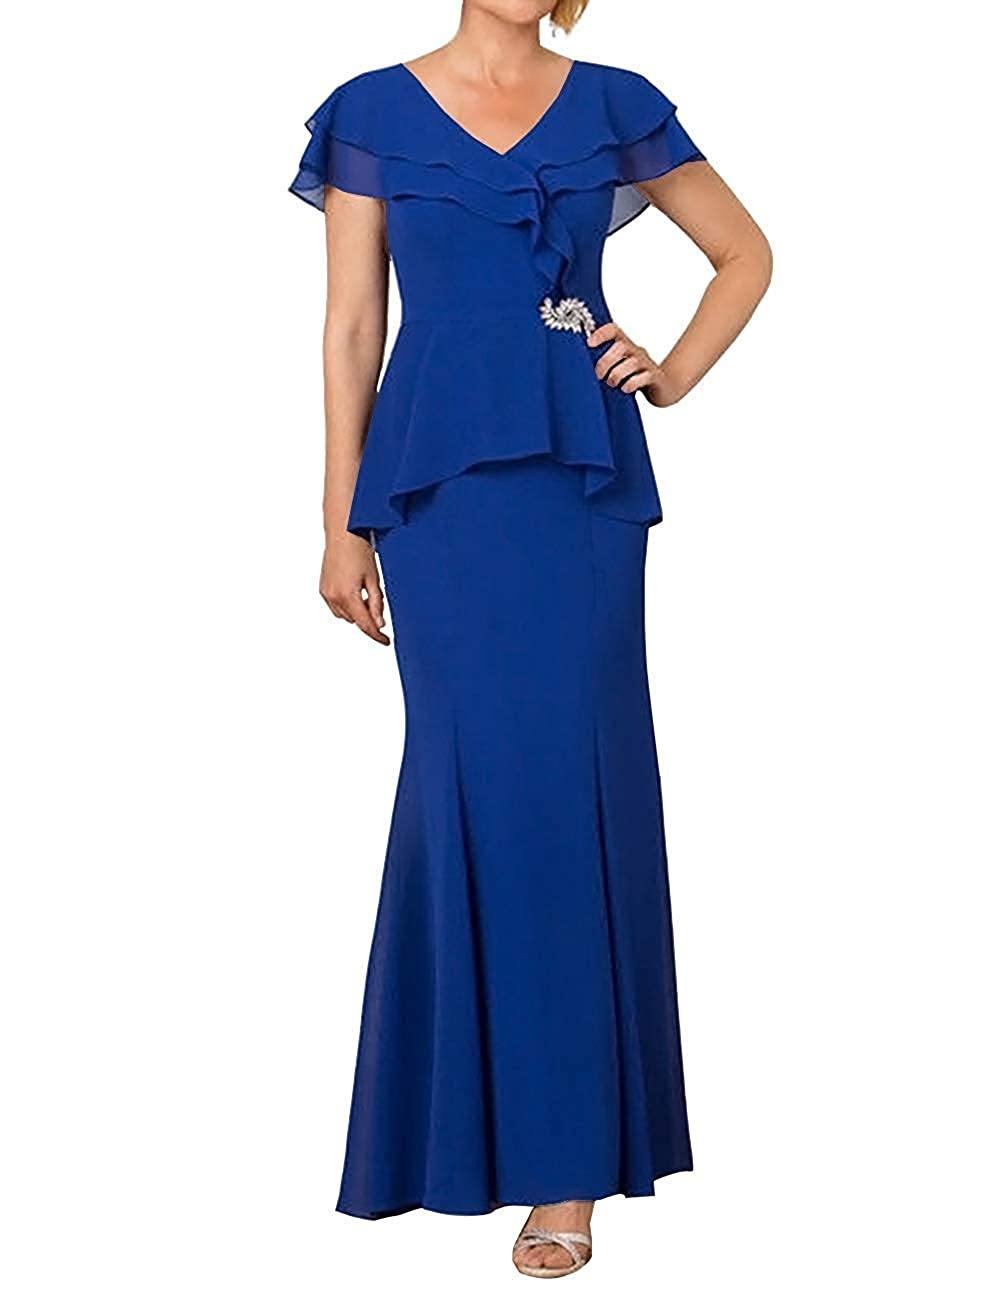 Royal bluee ZLQQ Womens Mother of The Bride Dress 2019 Cap Sleeve V Neck Formal Evening Gown